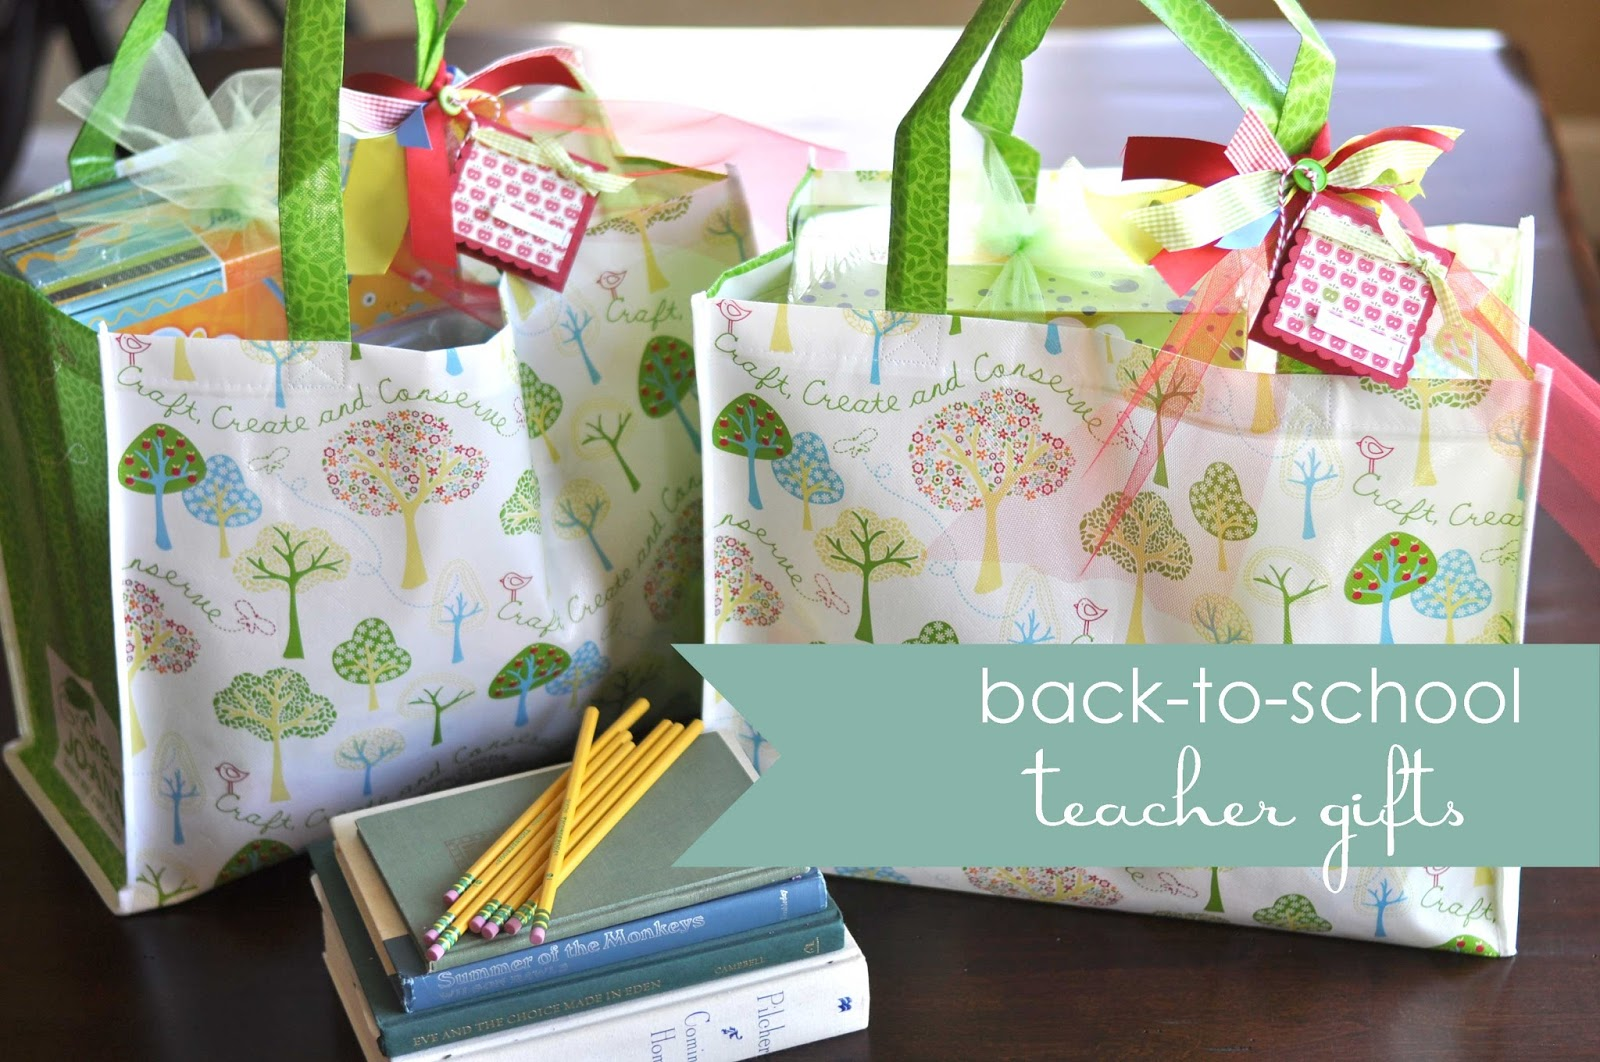 Classroom Ideas Back To School ~ Back to school teacher gift ideas little birdie secrets